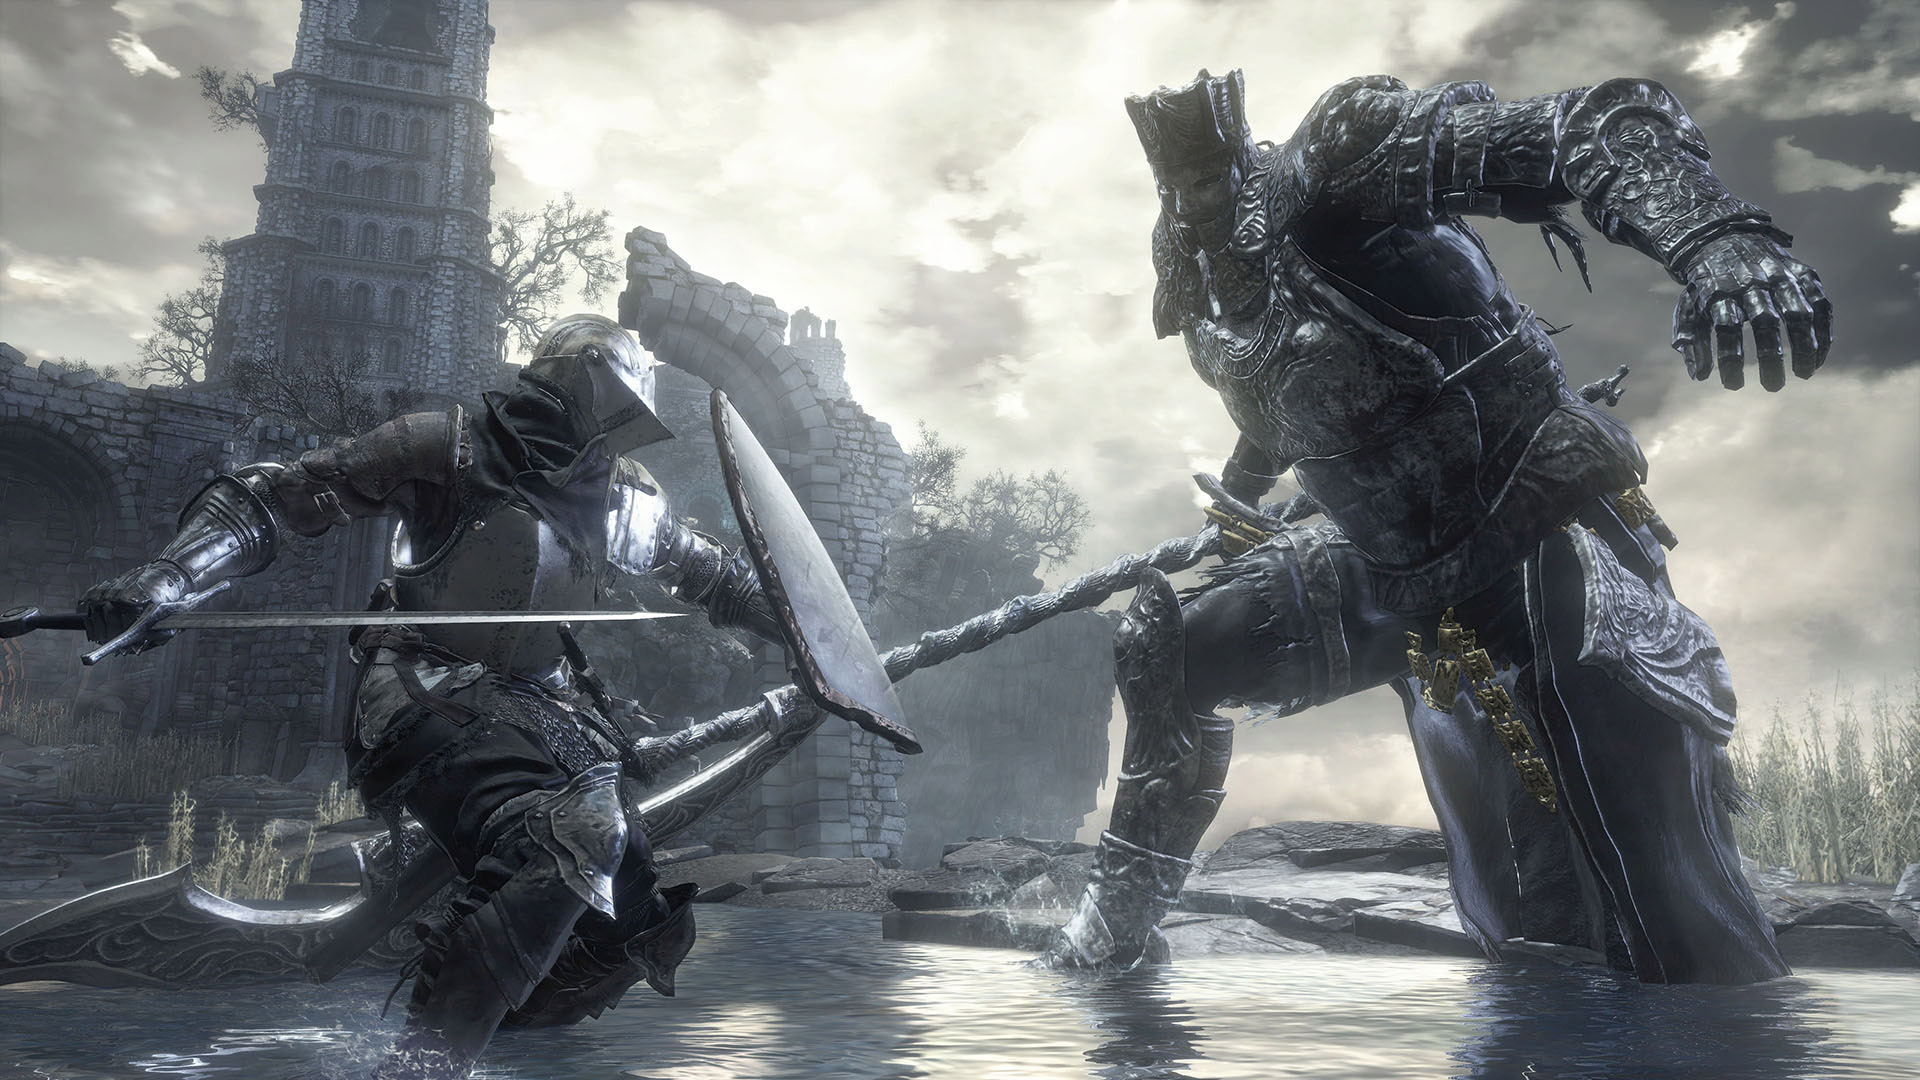 Free Download Dark Souls 3 Wallpaper 5 1920x1080 For Your